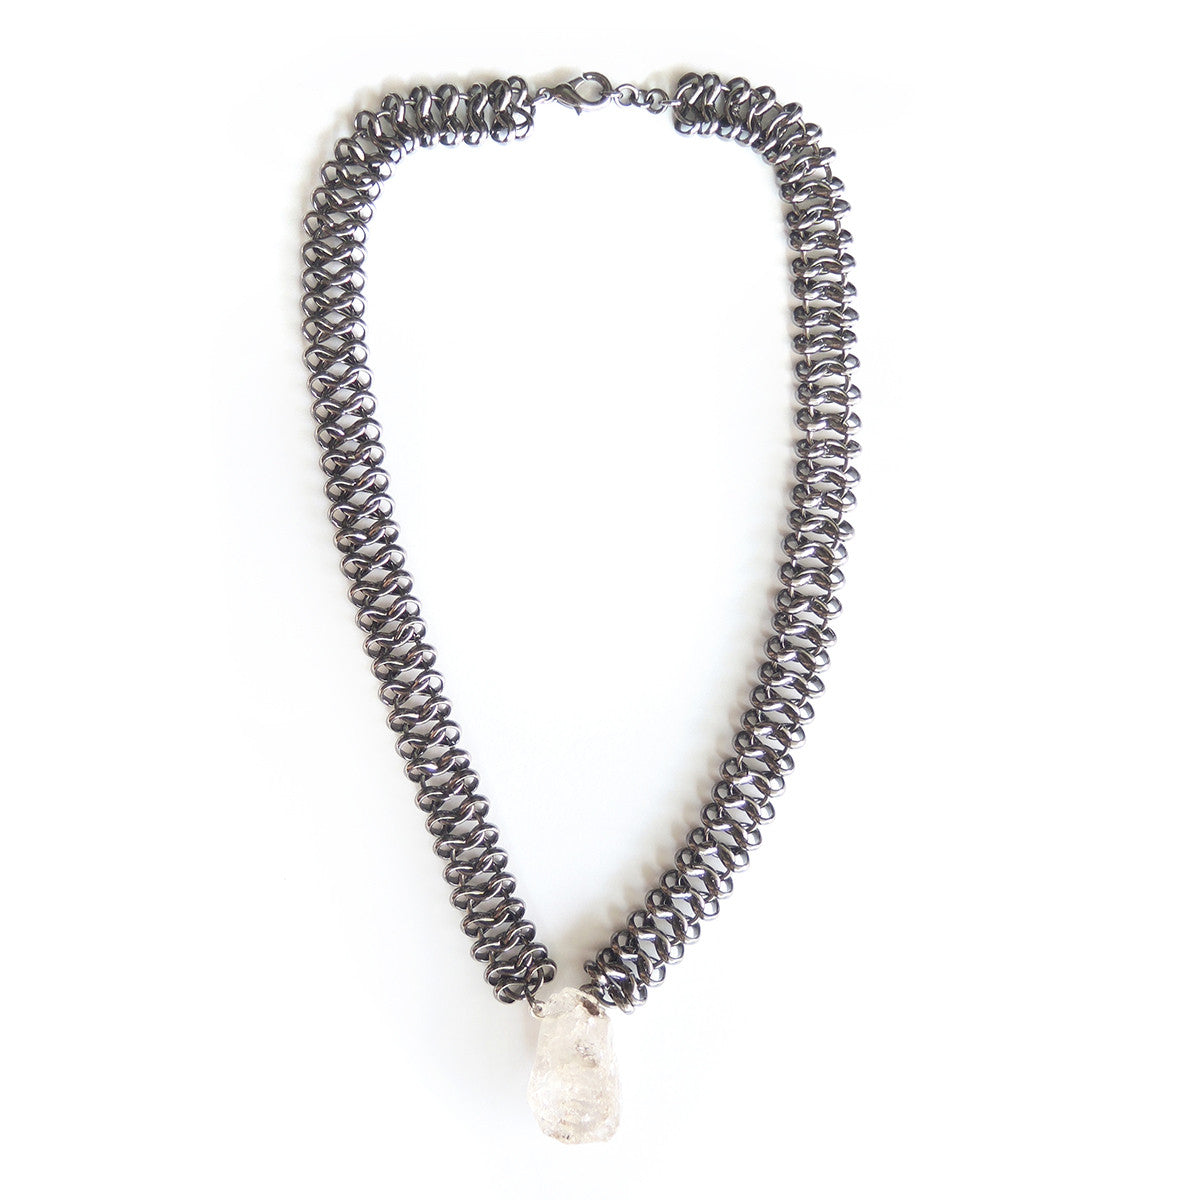 Chunky Herkimer Diamond Necklace - Chainless Brain